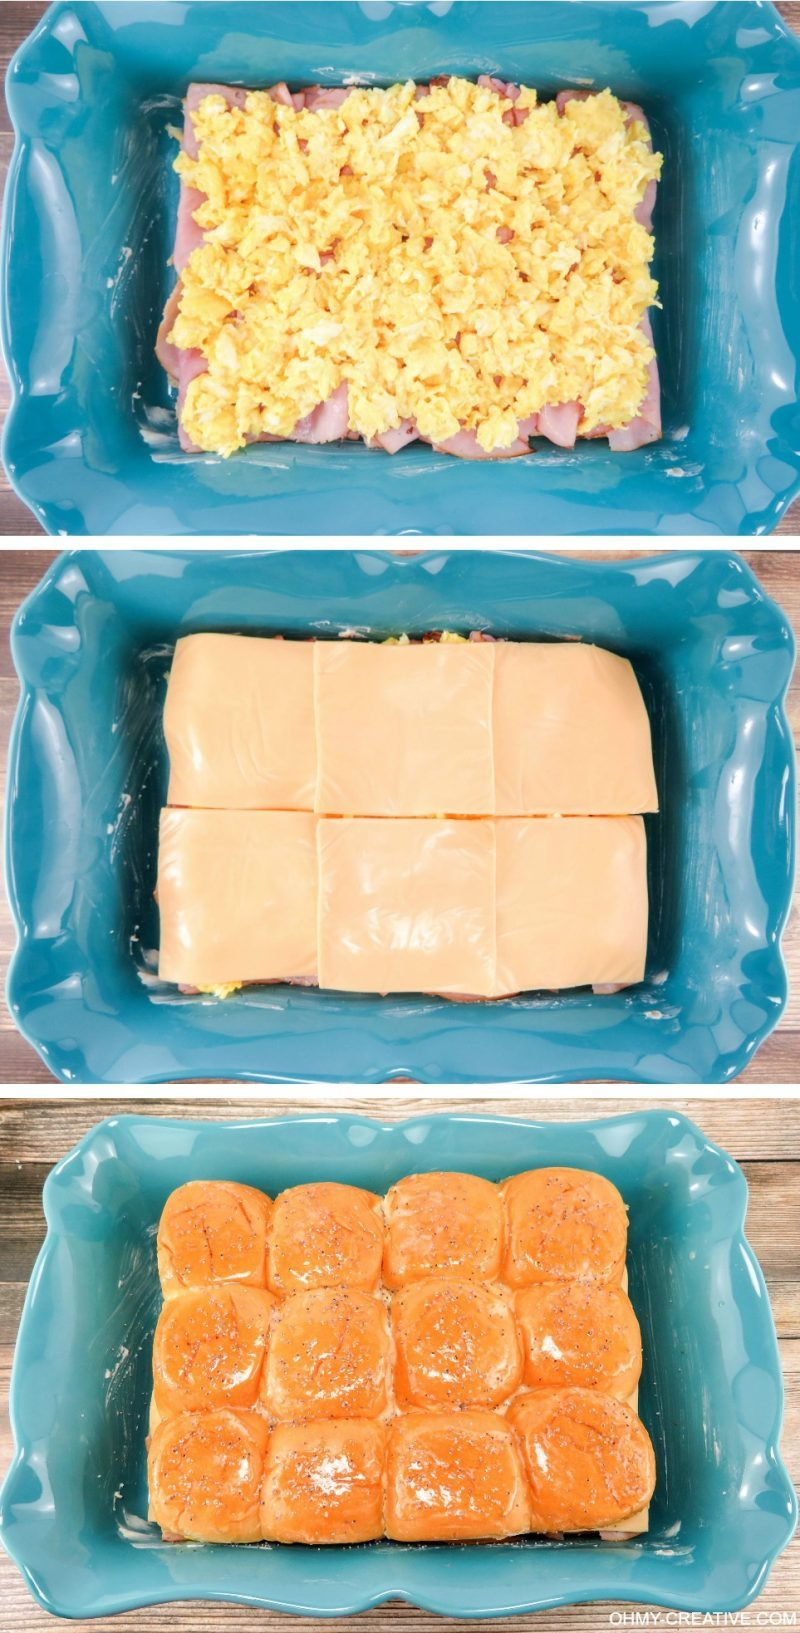 These Breakfast Hawaiian Ham and Cheese Sliders are perfect to serve for breakfast, brunch or dinner! OHMY-CREATIVE.COM | game day sliders | brunch sliders | breakfast sliders | egg sliders | ham and cheese sliders | egg recipe | breakfast recipe | brunch recipe | Kings Hawaiian rolls | kings Hawaiian sliders